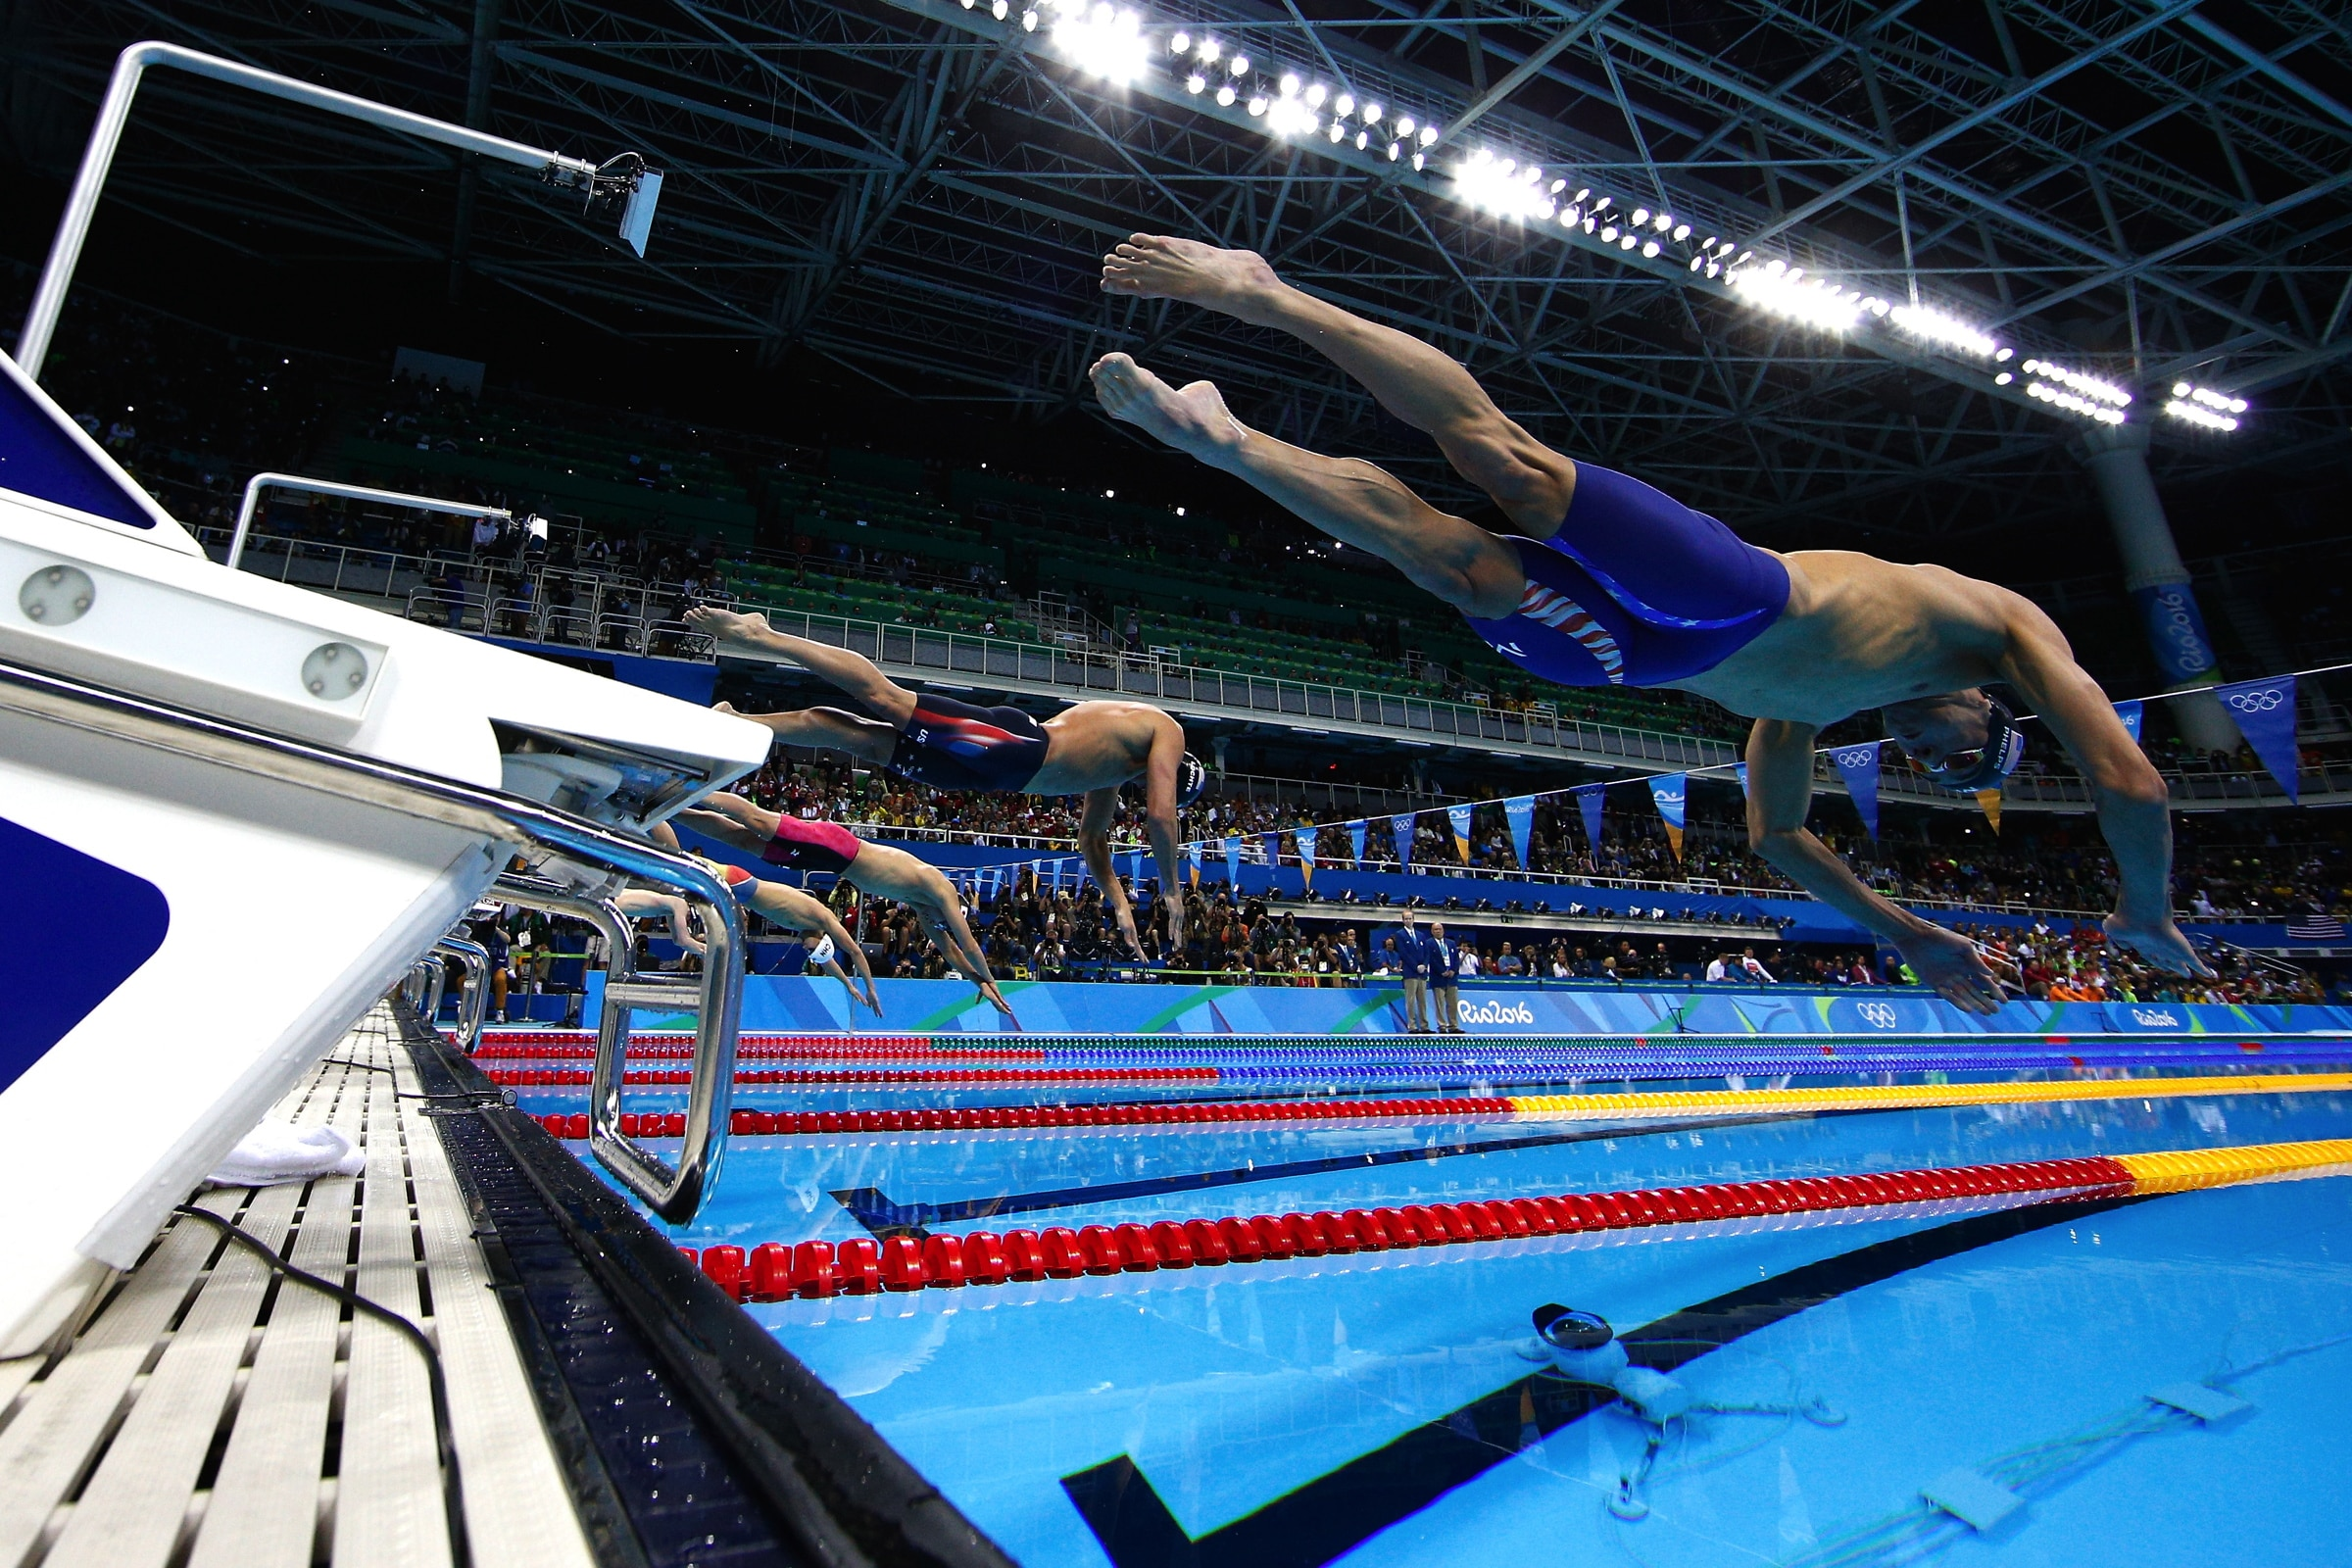 Swimming - Men's 200m Individual Medley Final